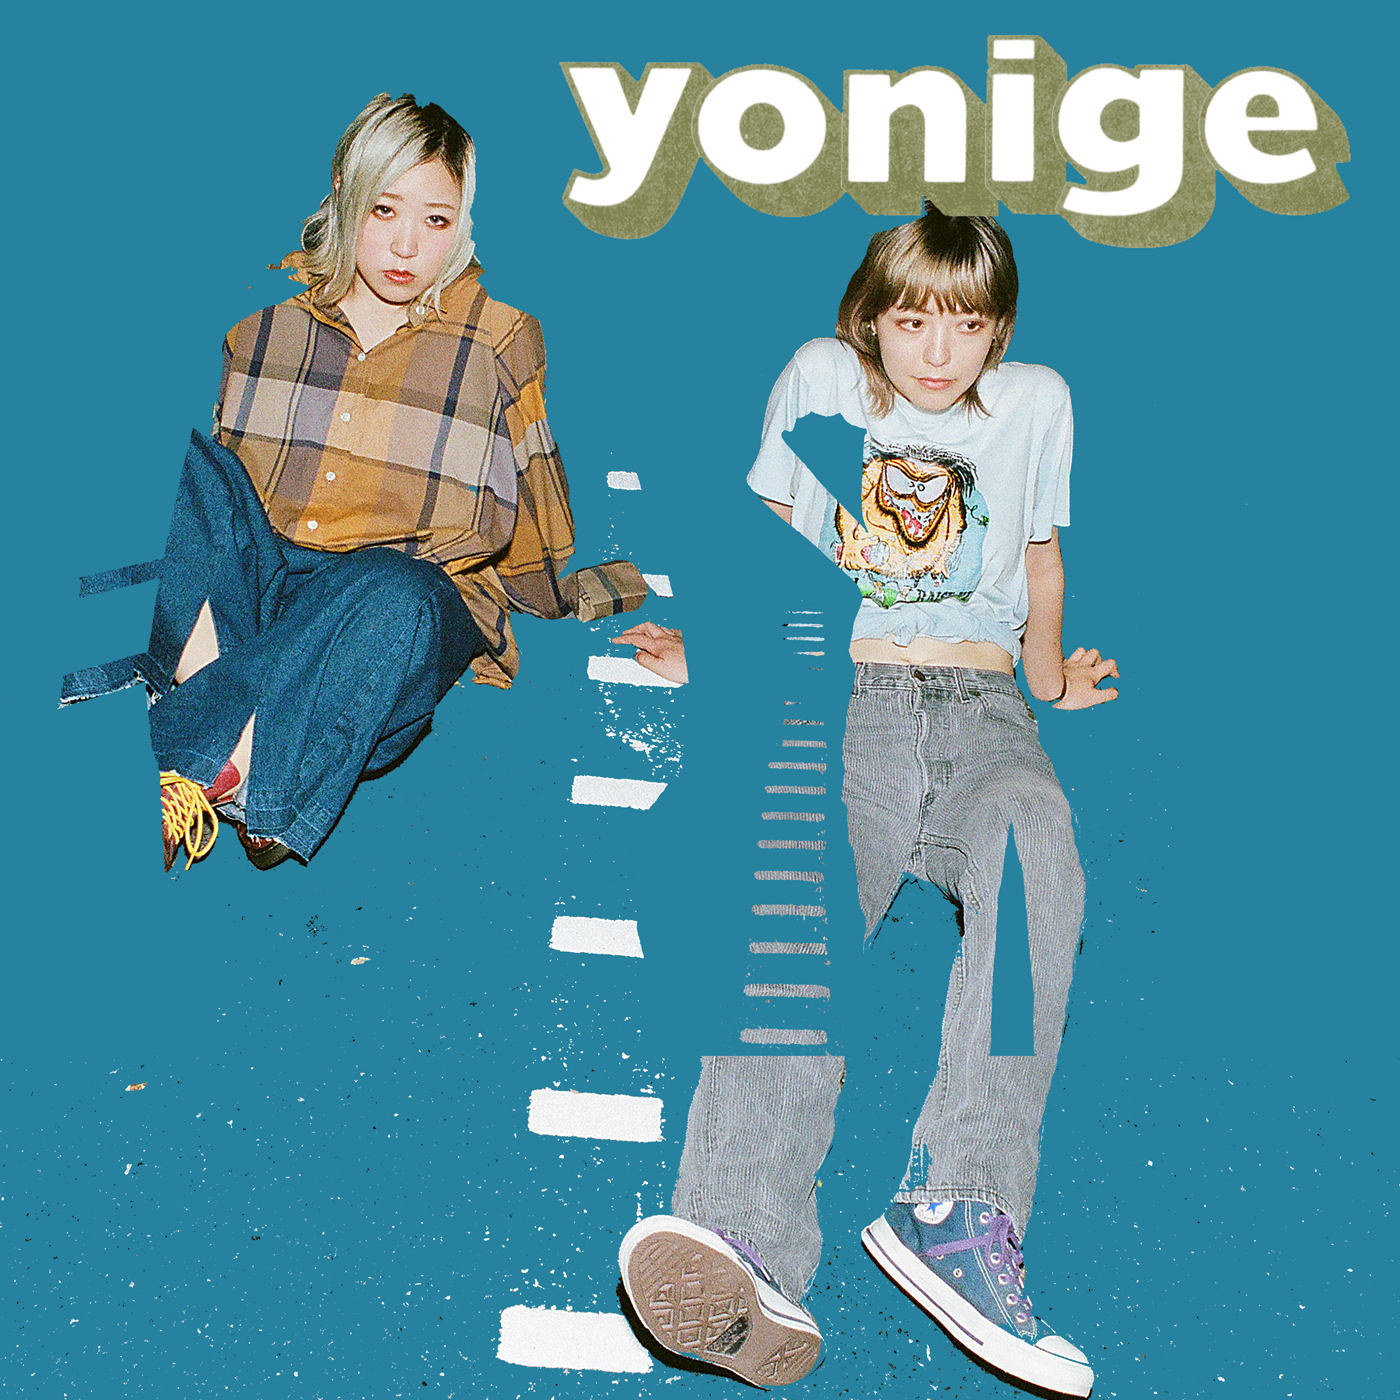 20181003.1905.14 yonige - House (FLAC) cover.jpg